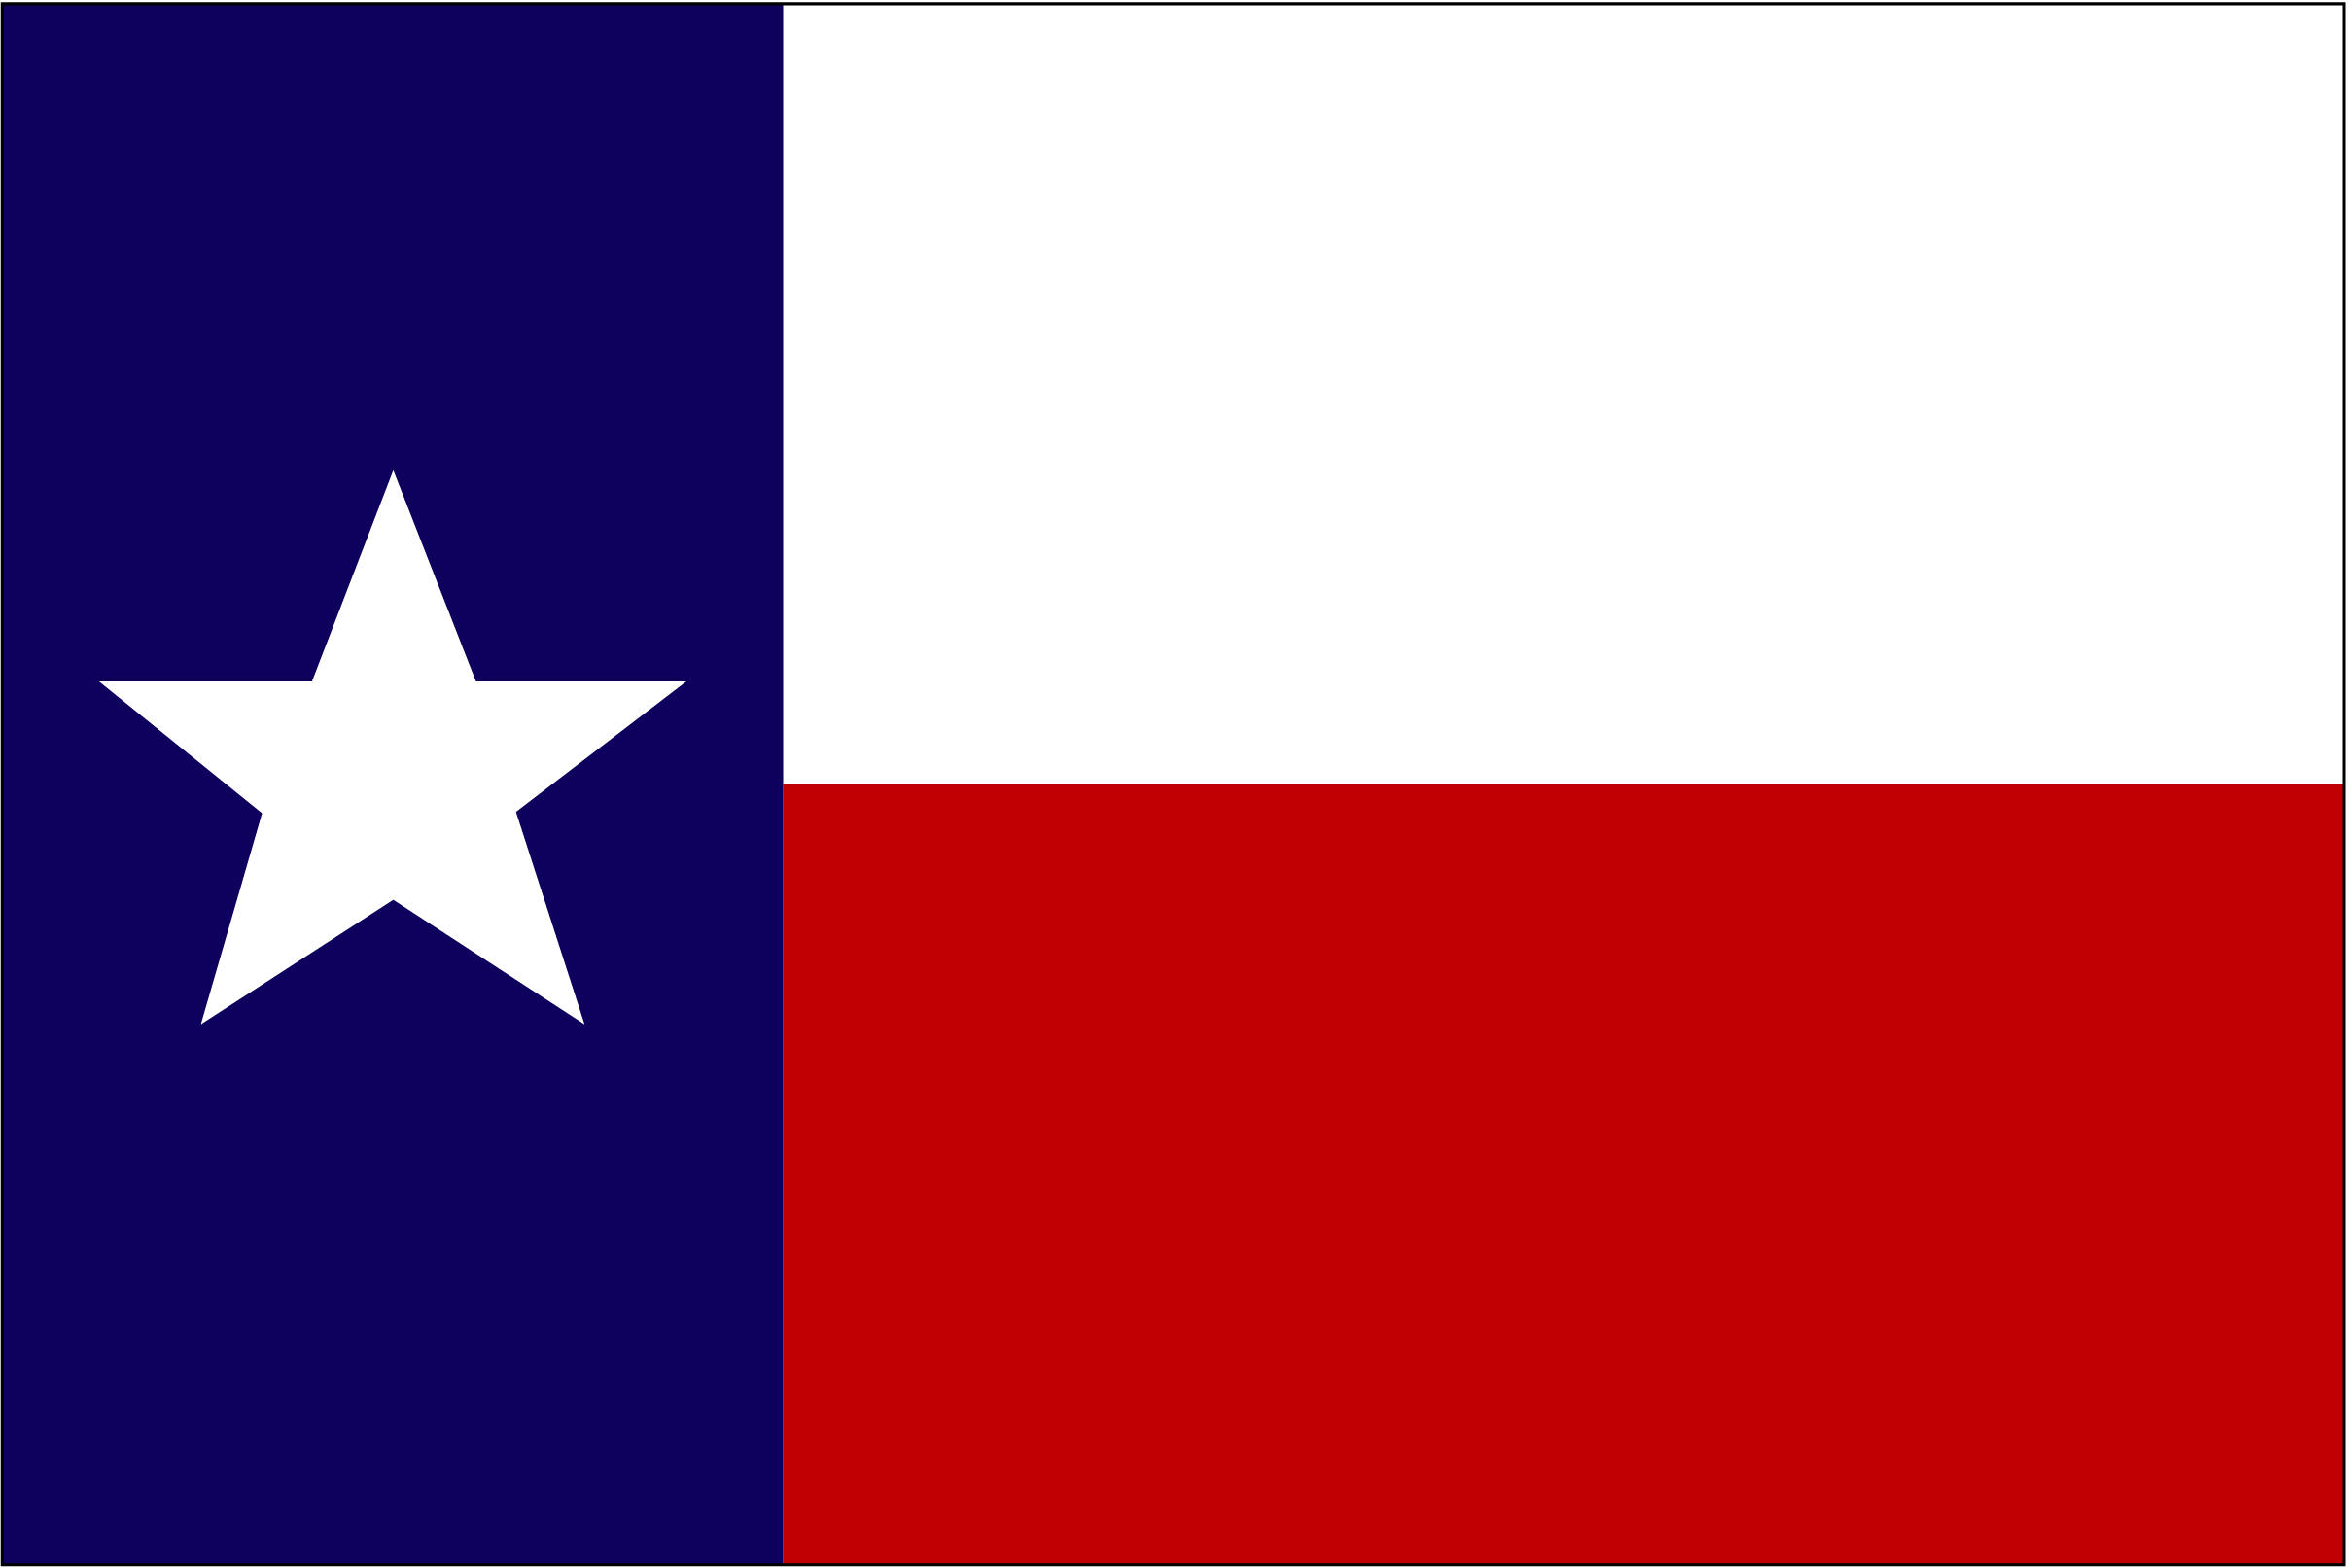 texas flag large by dallasx on deviantart rh dallasx deviantart com waving texas flag vector art texas flag vector art